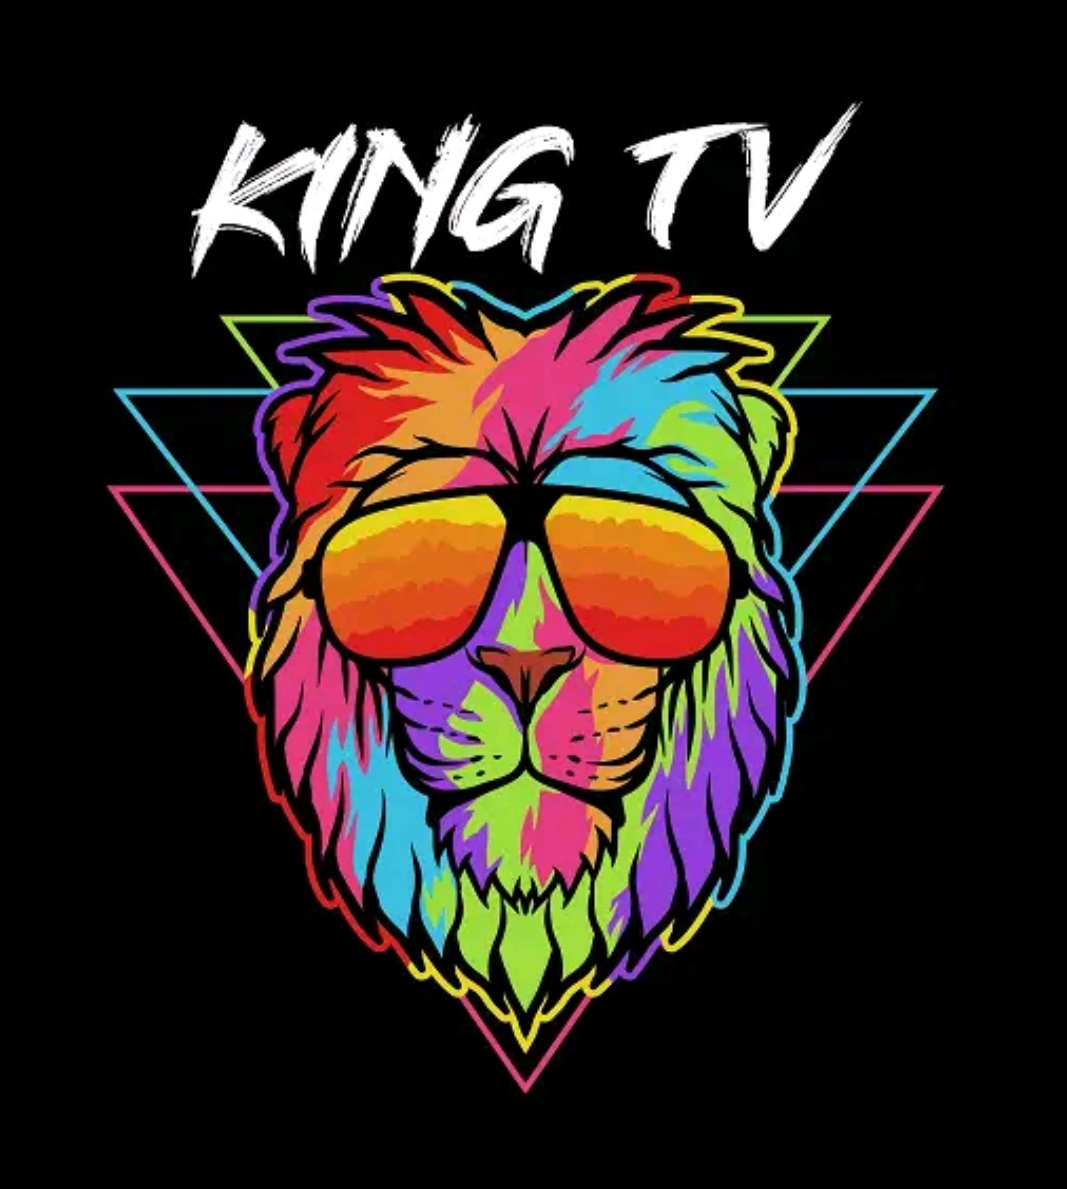 king tv cine apk 2020